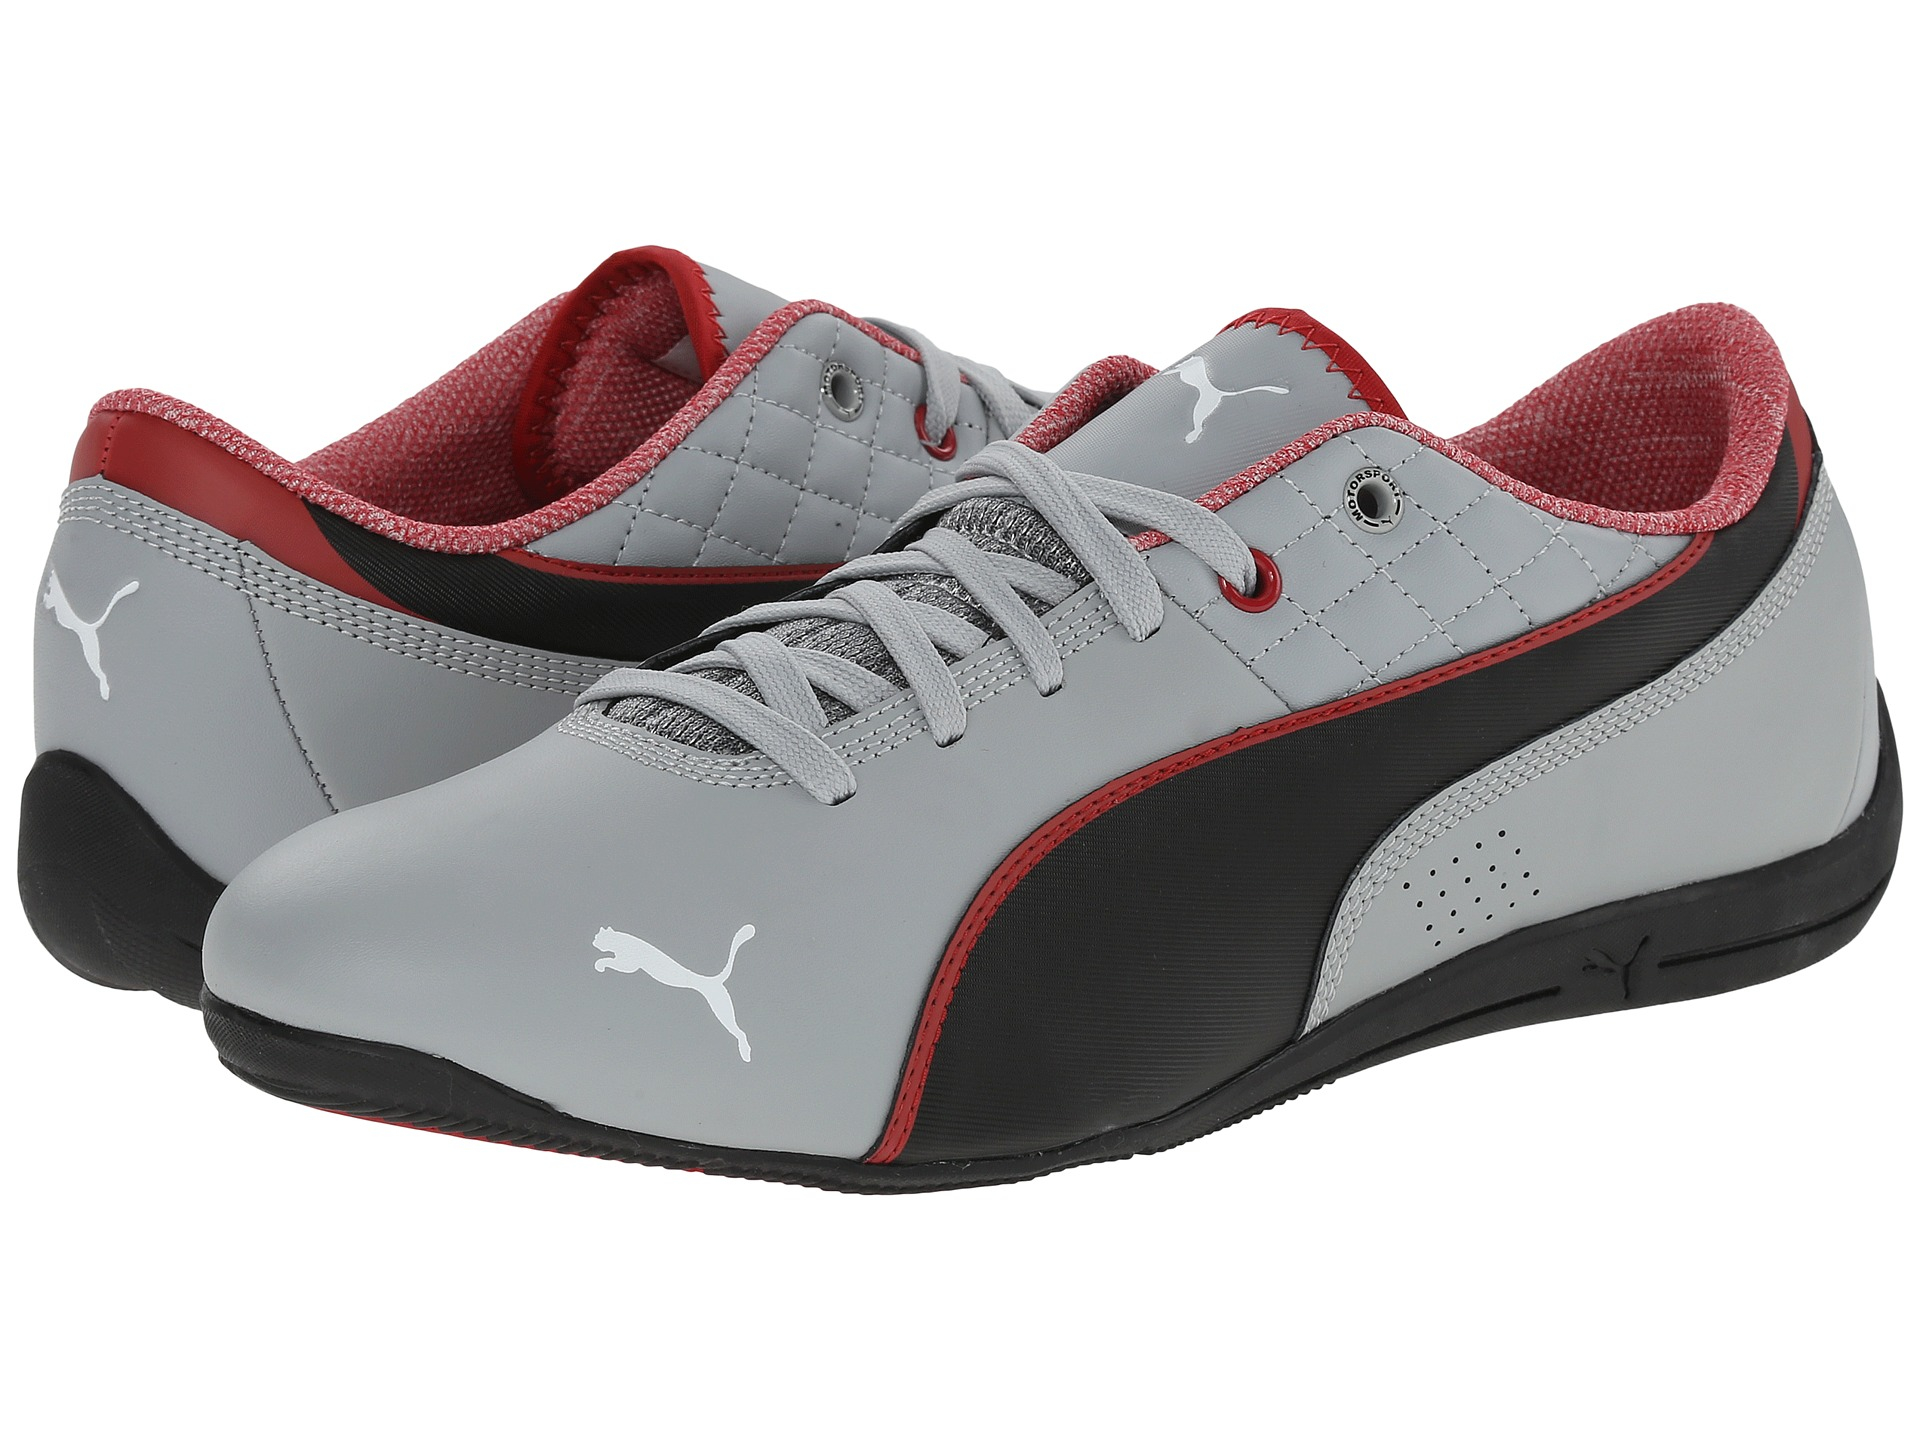 f6e1d2b940 Lyst - PUMA Drift Cat 6 Nm in Gray for Men